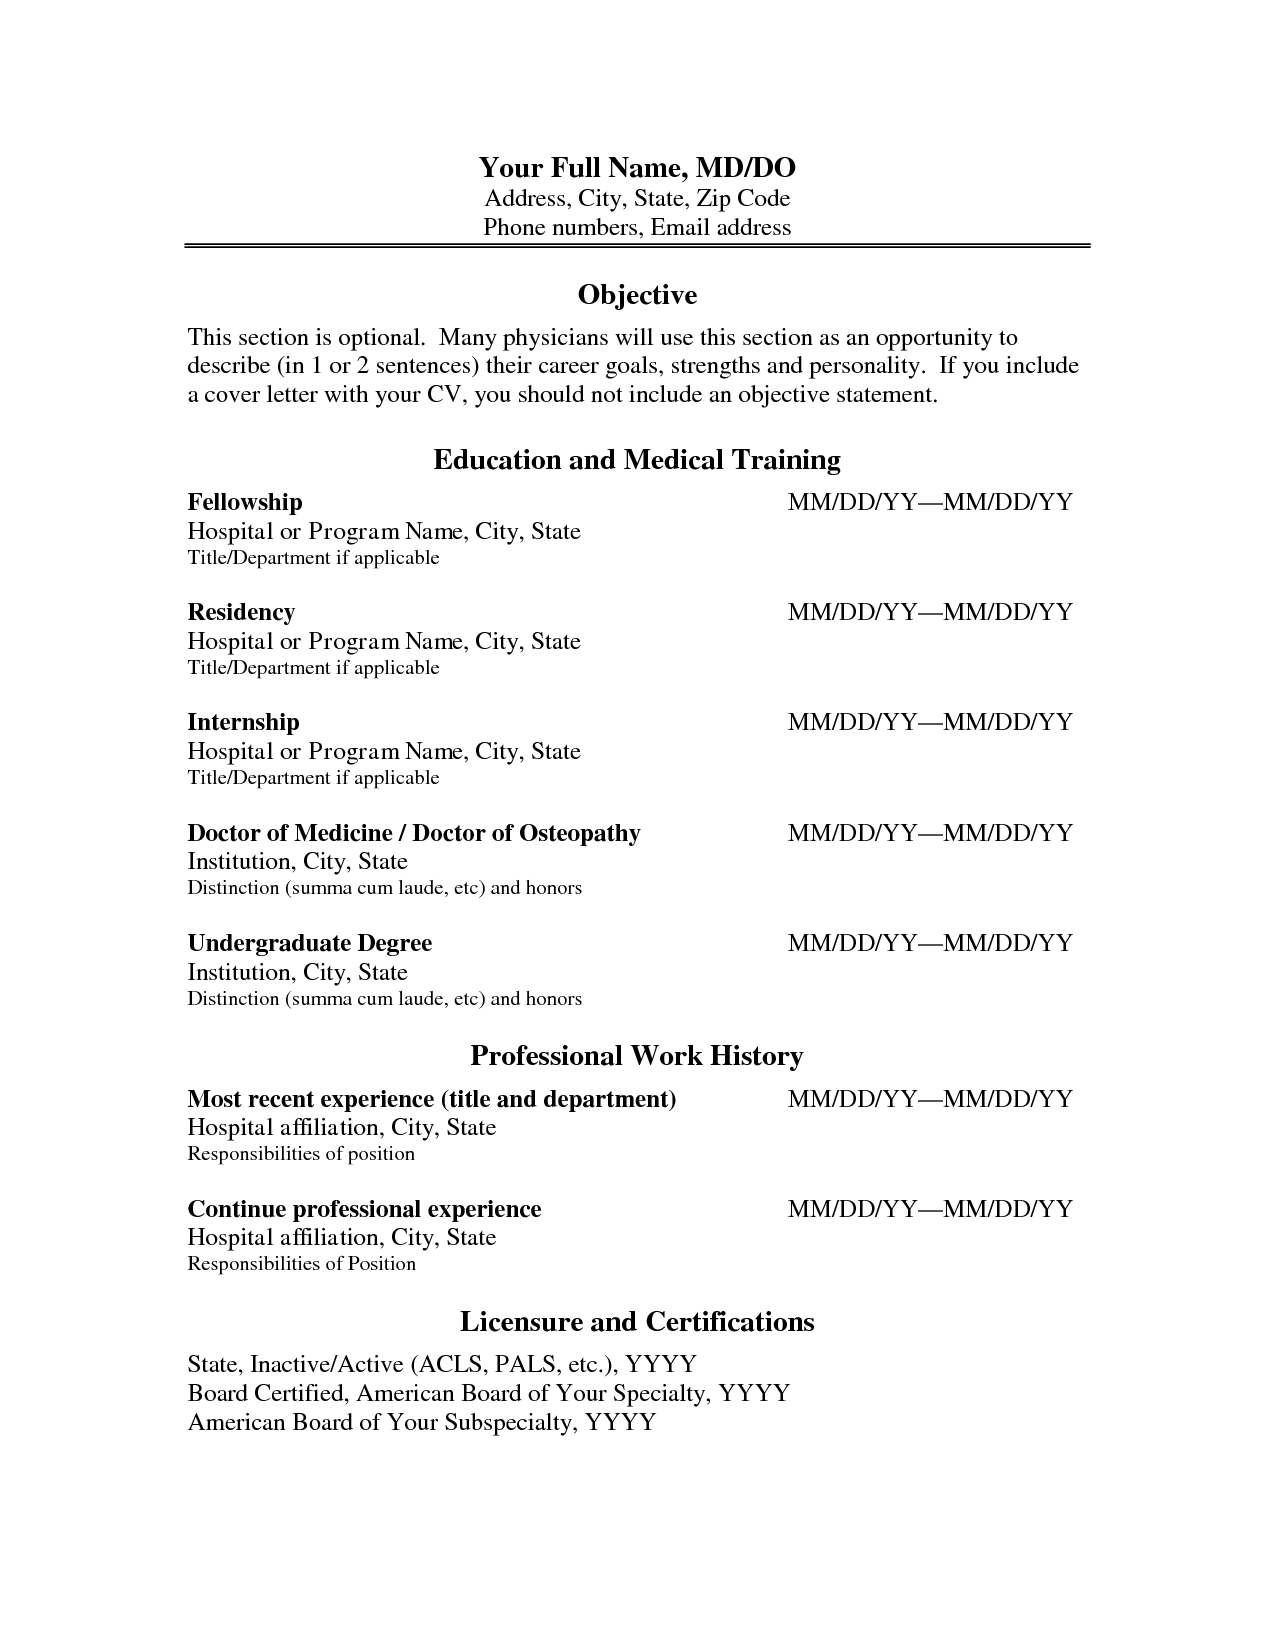 Cv Format Physician Physician Assistant Resume And Curriculum Vitae ...